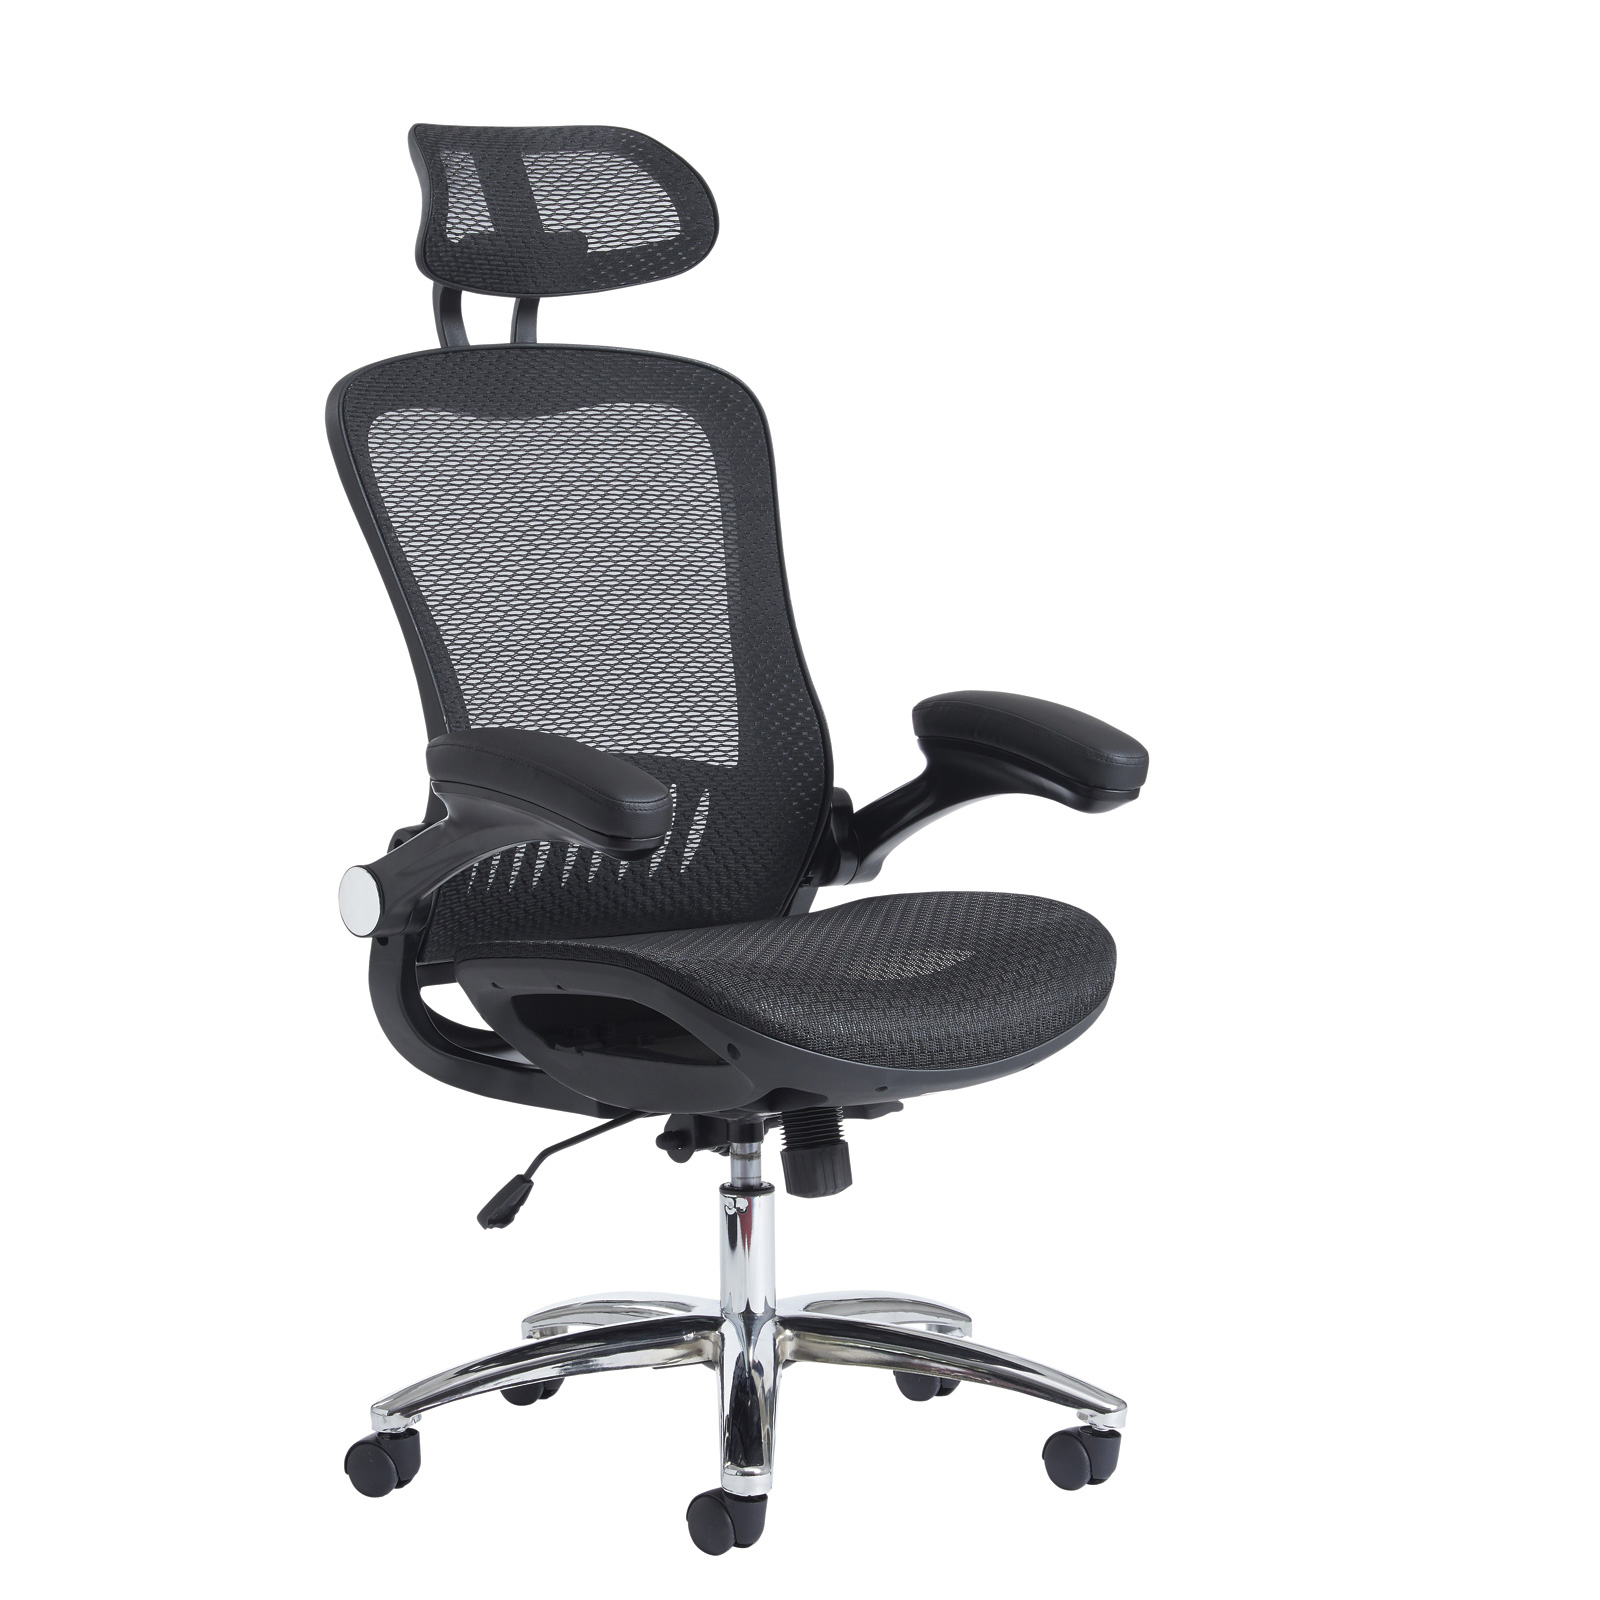 Desk Chairs Curva high back mesh chair - black